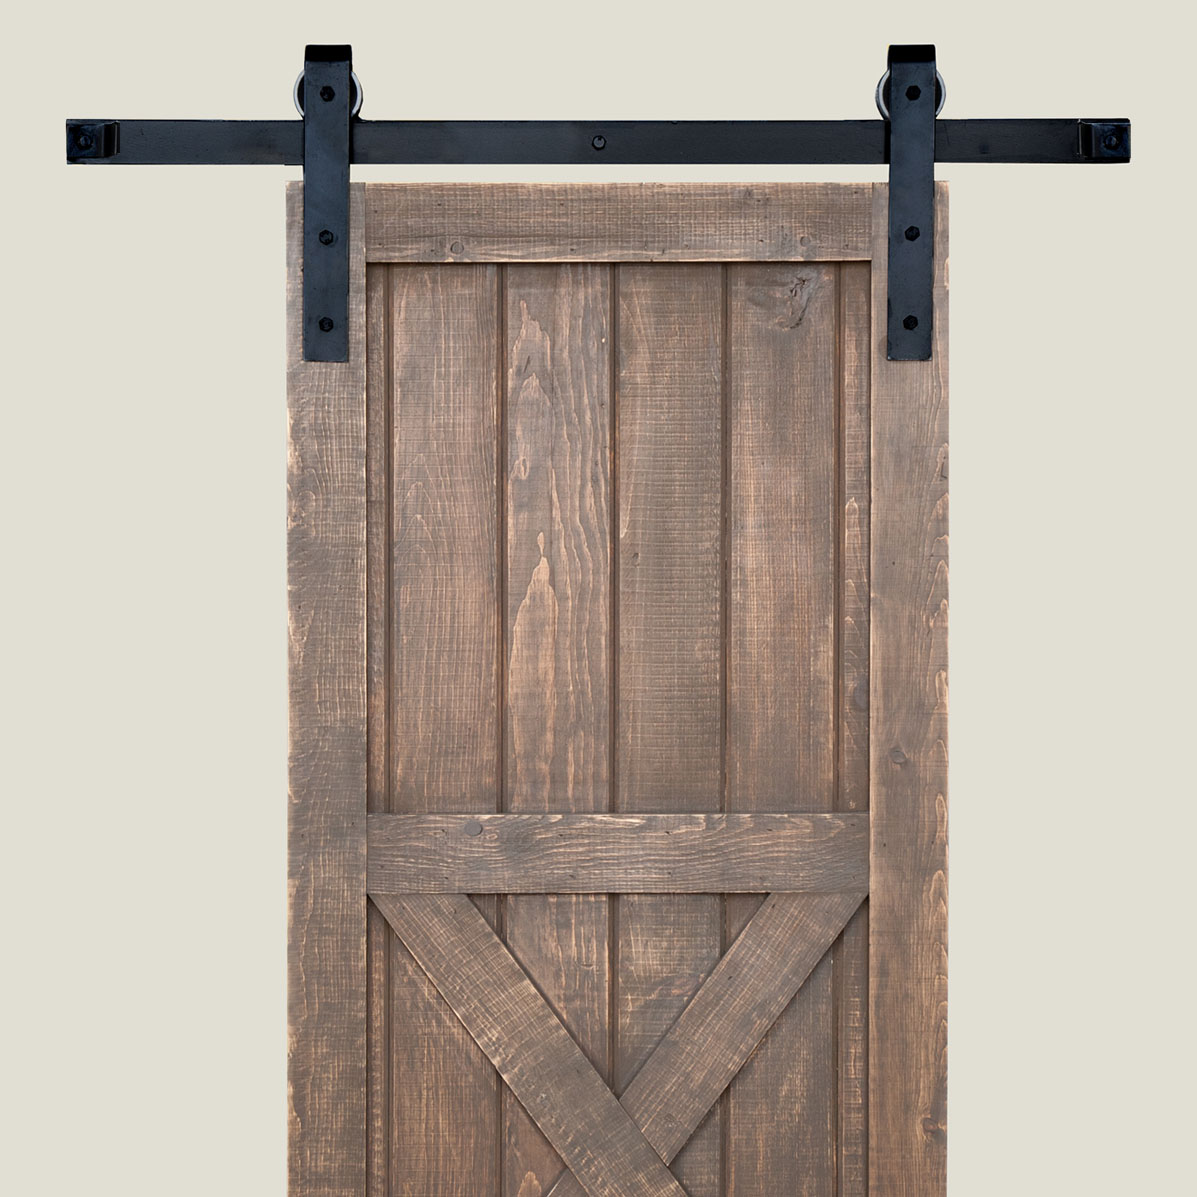 Barn door hardware shop and buy online - Barn Door Hardware Shop And Buy Online 10